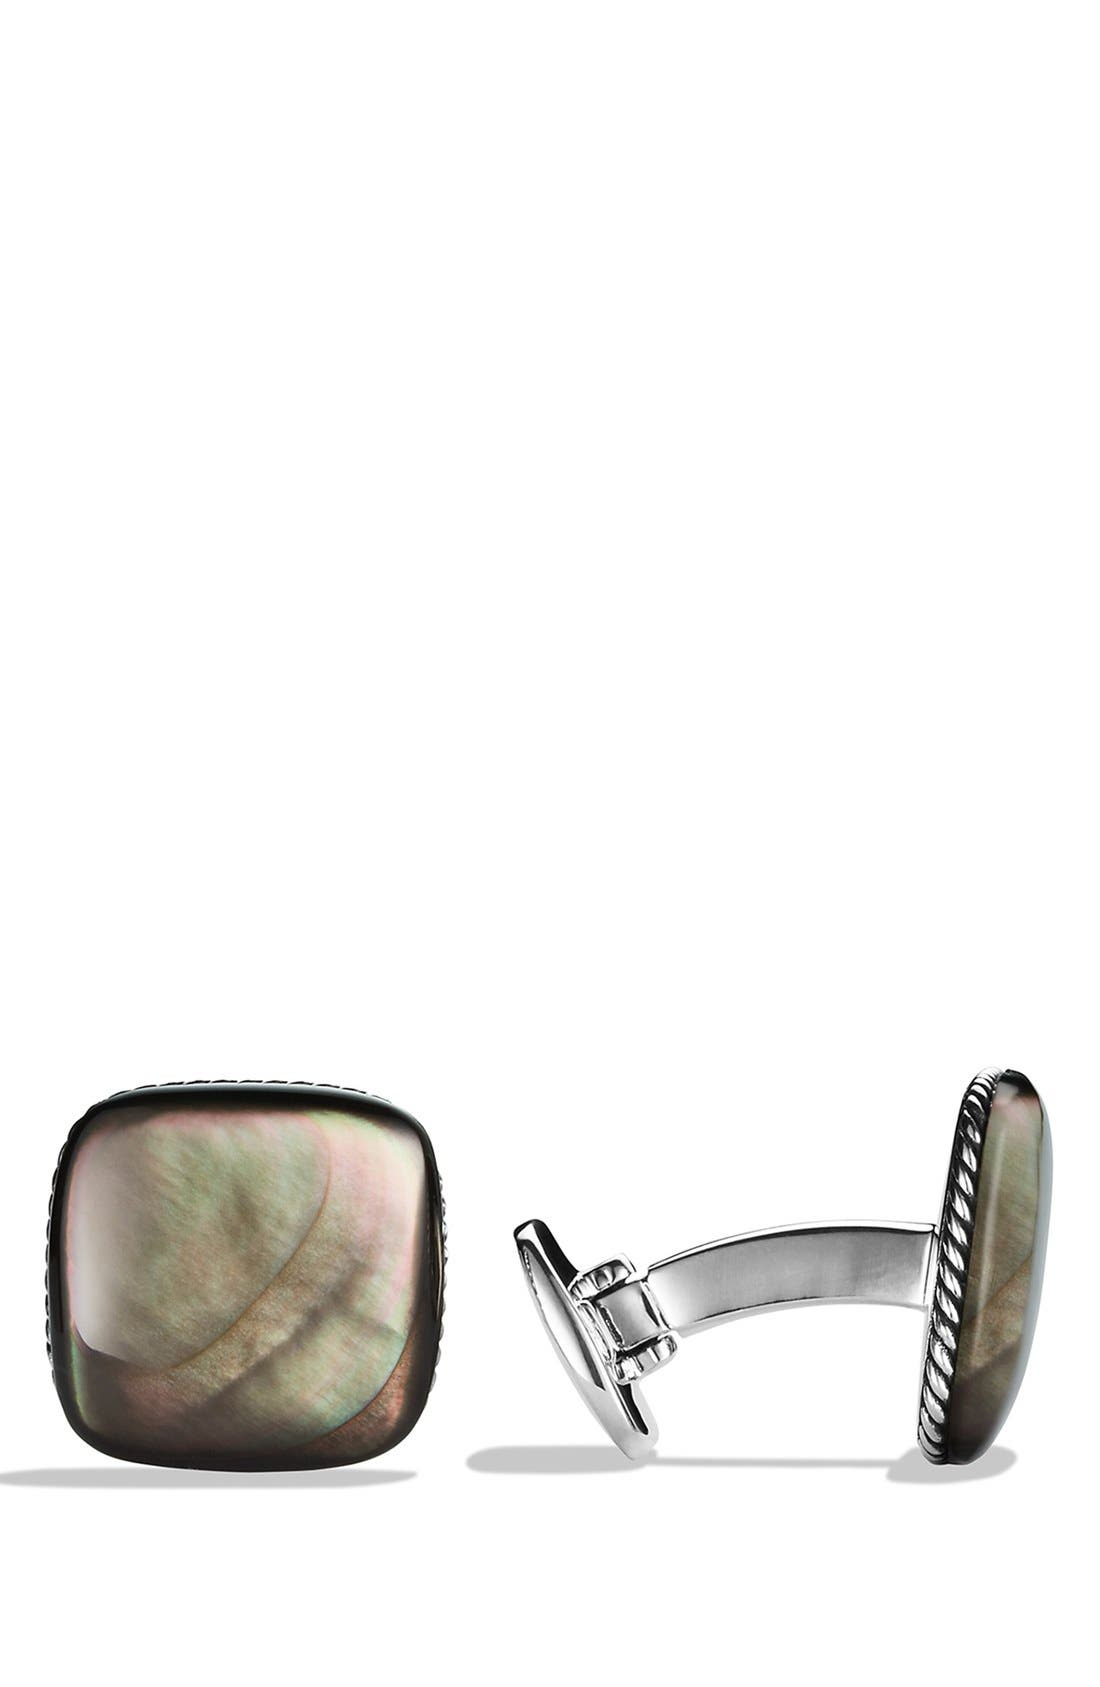 David Yurman 'Streamline' Cuff Links with Black Mother-of-Pearl